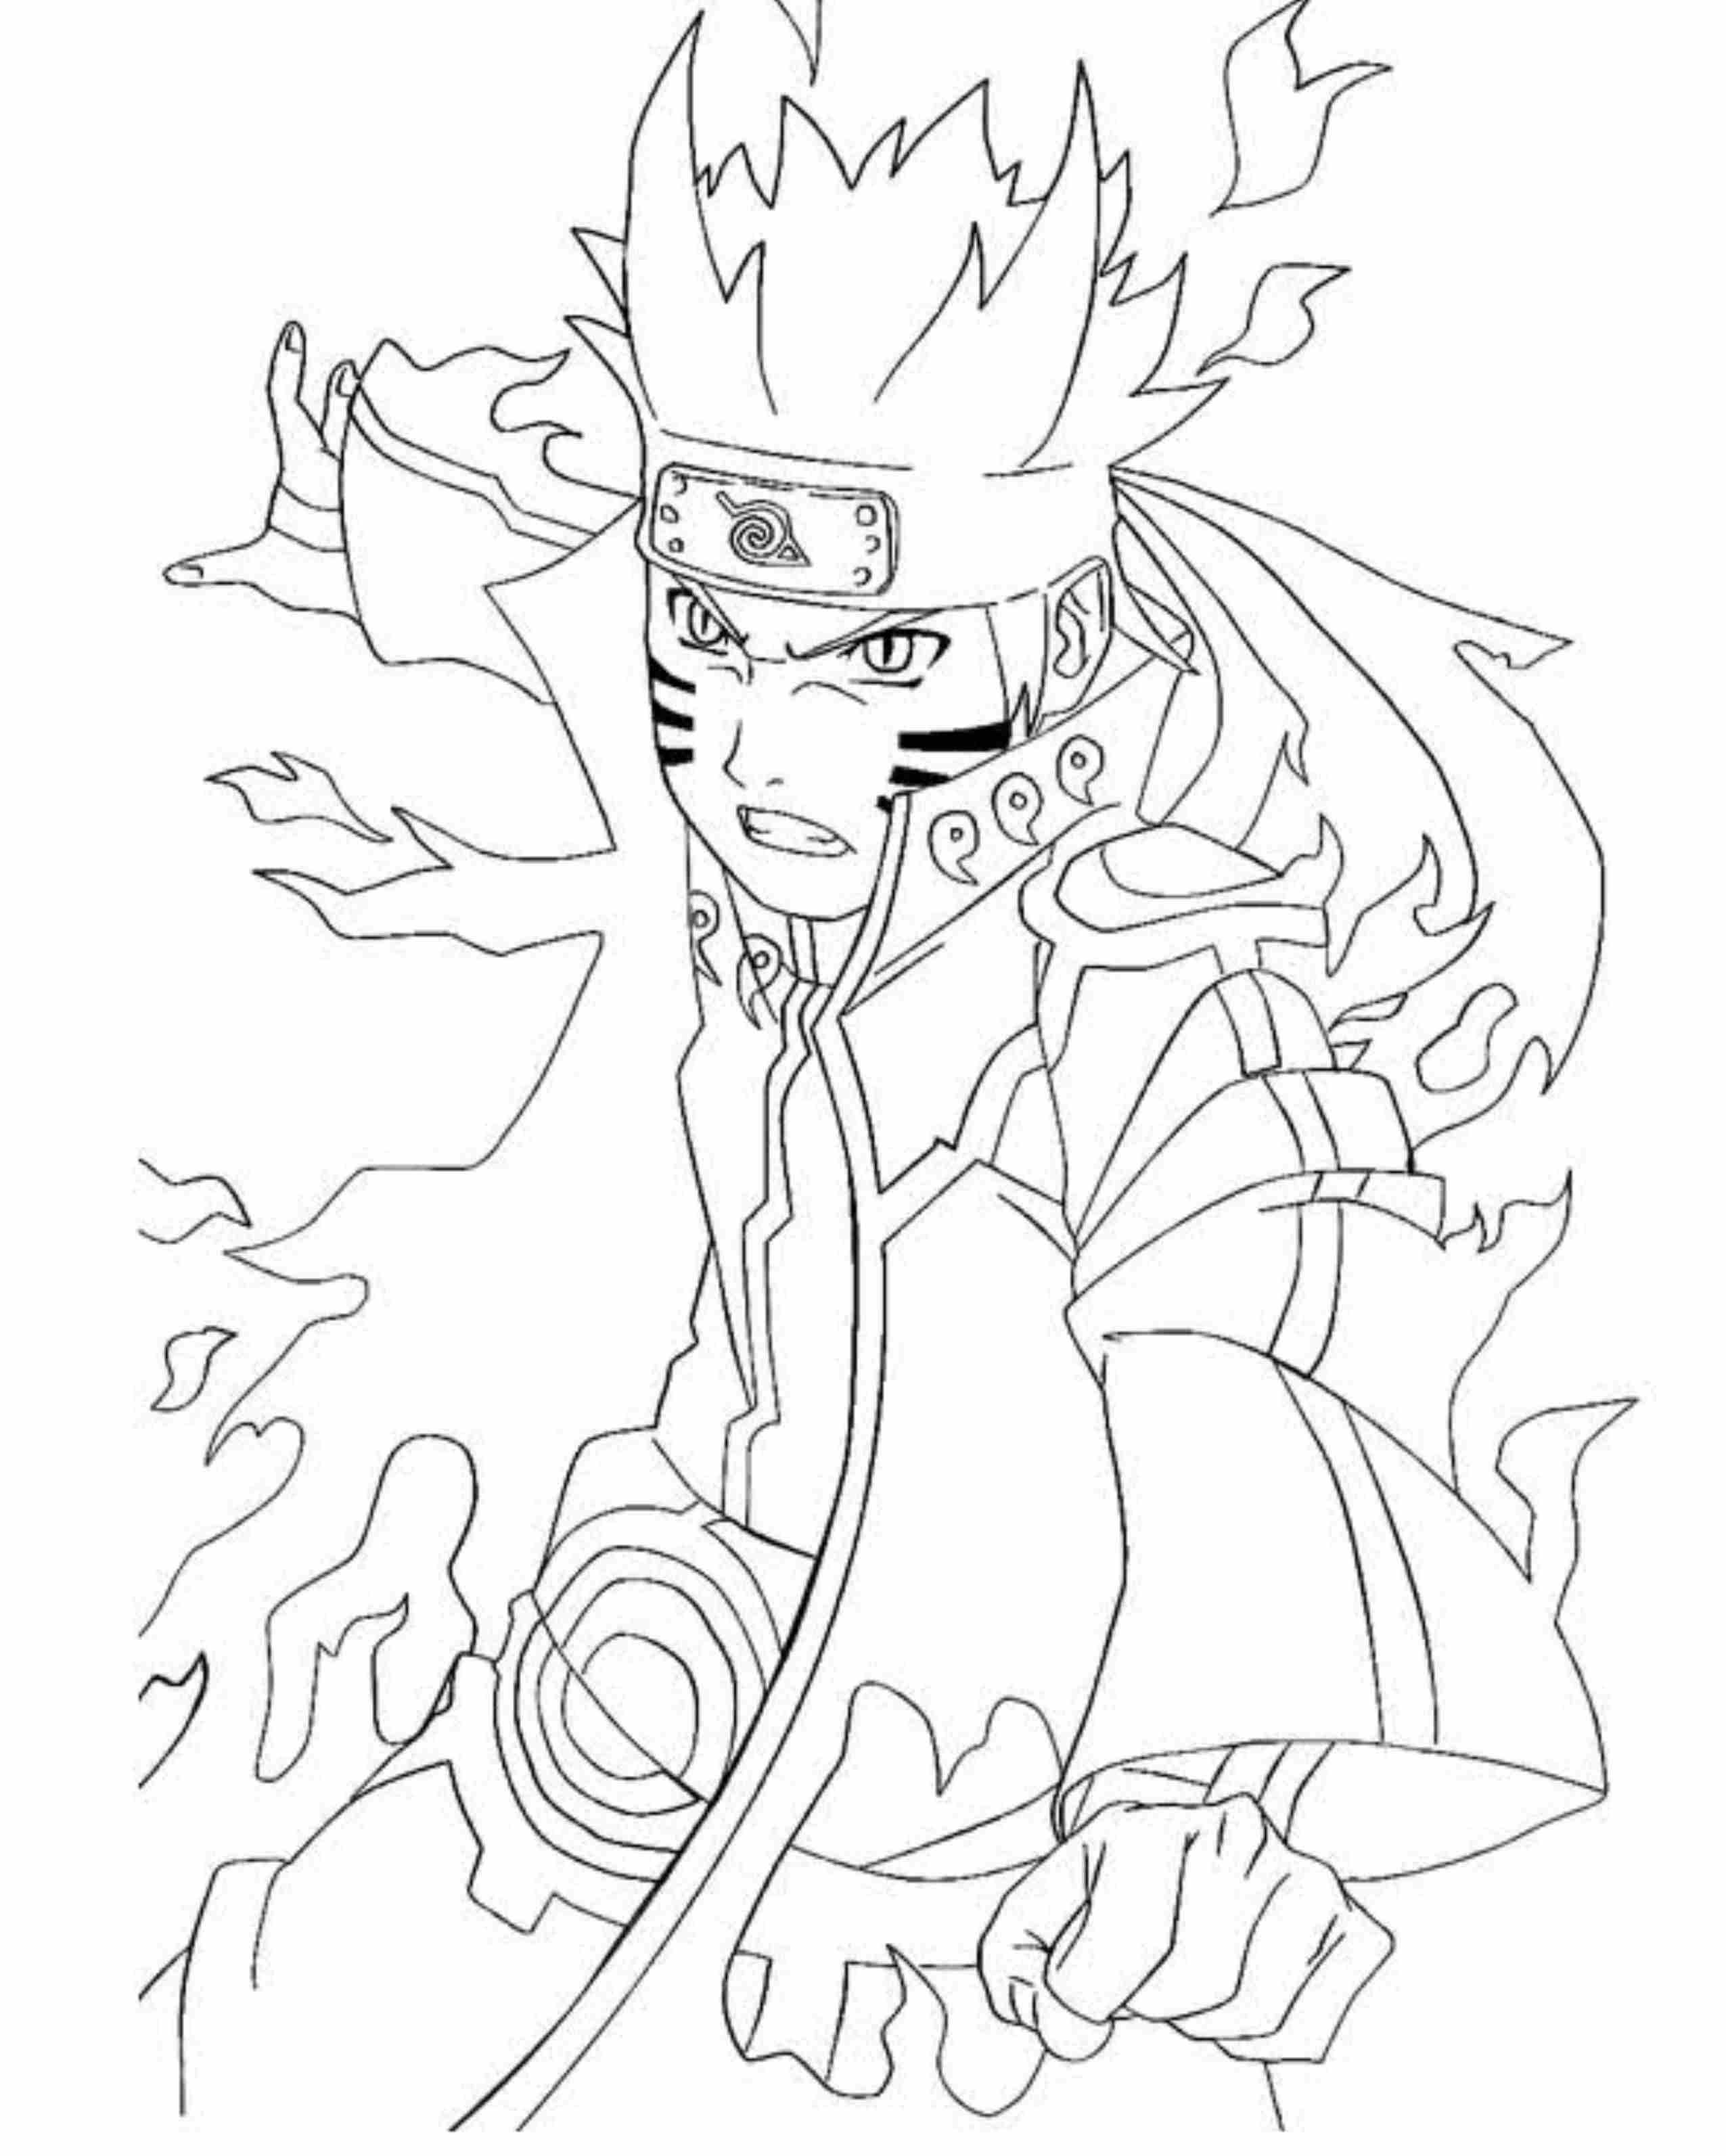 Coloring Pages Of Naruto Shippuden Characters | Dibujos dedans Coloriage De Naruto